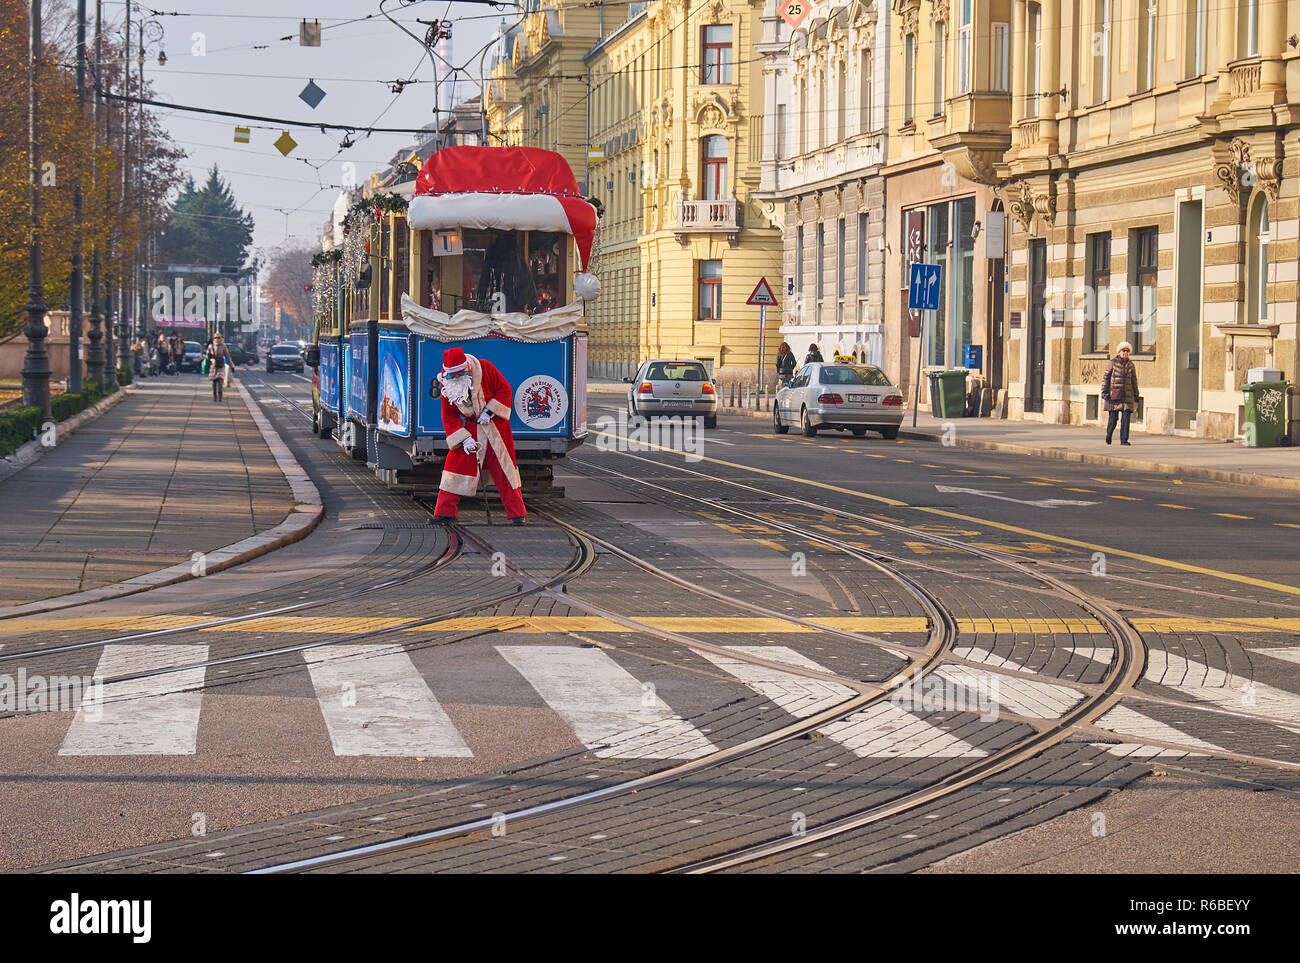 santa-operating-tracks-for-santa-claus-tram-as-part-of-the-advent-market-celebration-in-zagreb-going-through-the-streets-of-the-capital-R6BEYY.jpg